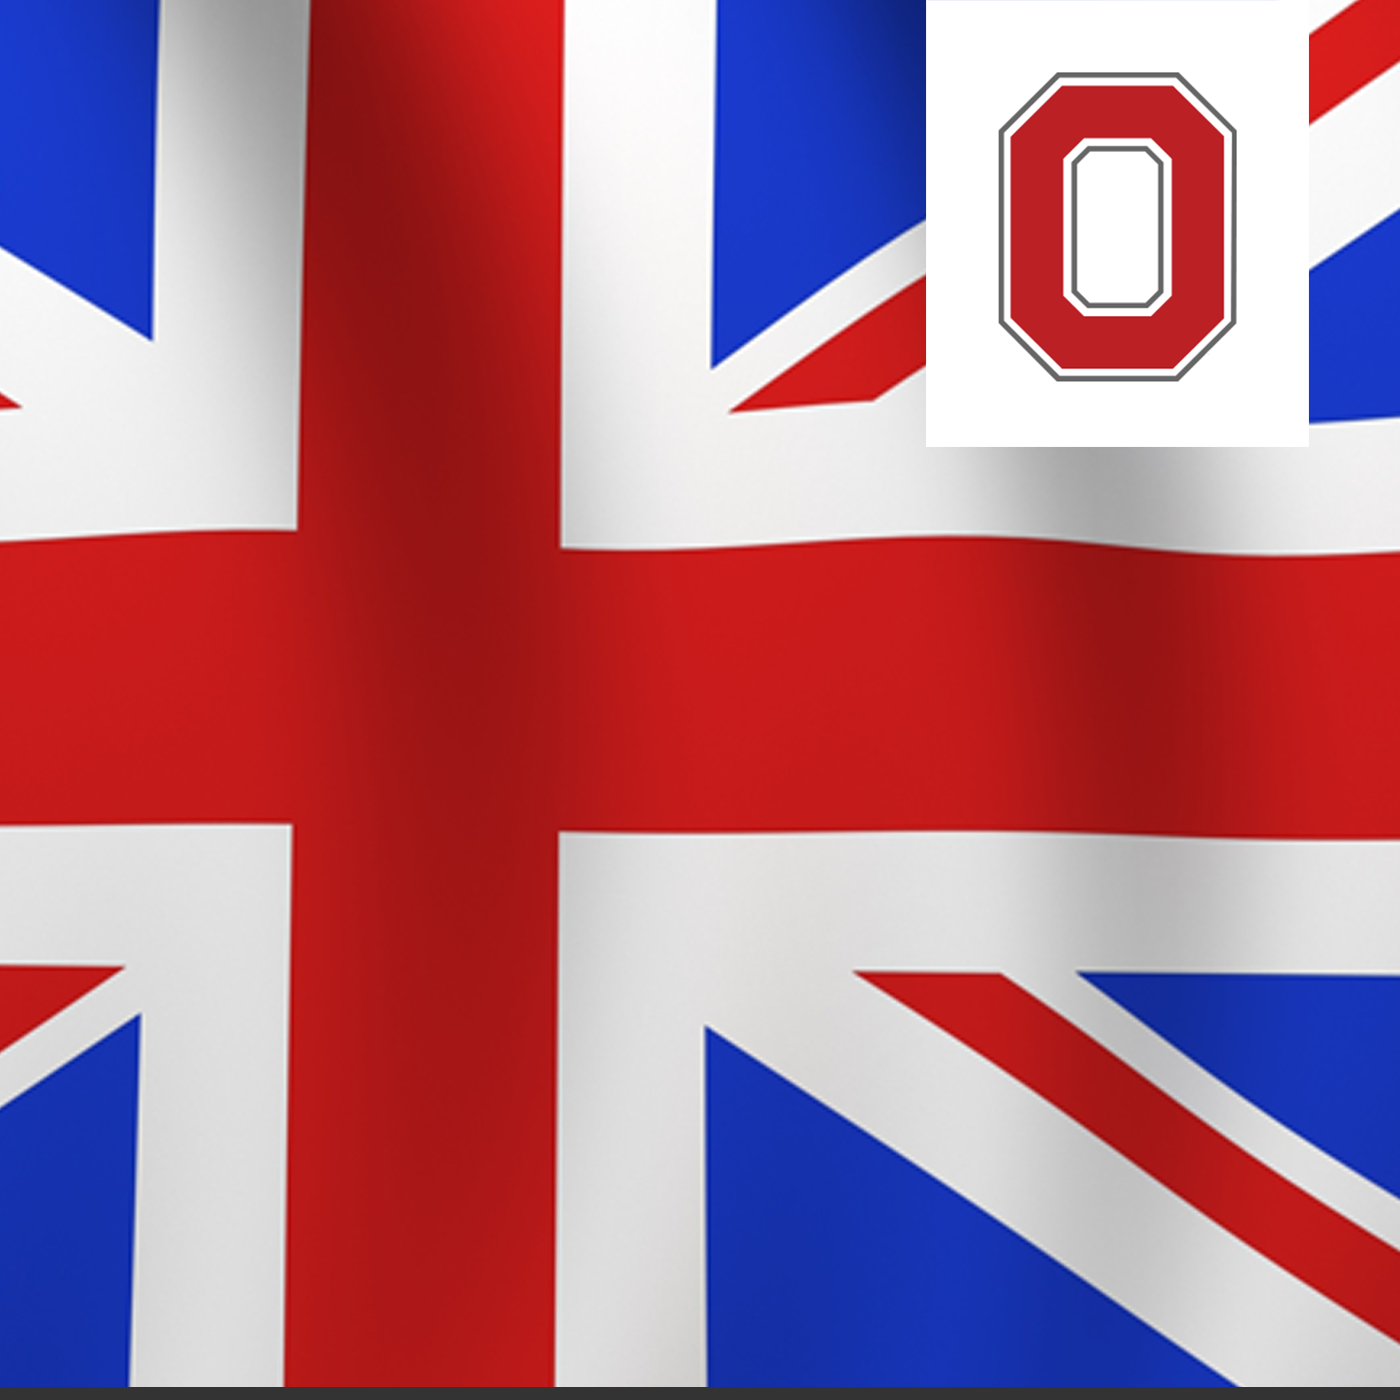 the influence of the british invasion The appearance of british rock groups in america changed our culture massively the original beatles invasion opened the floodgates, and provided a boost for other cultural exports such as.